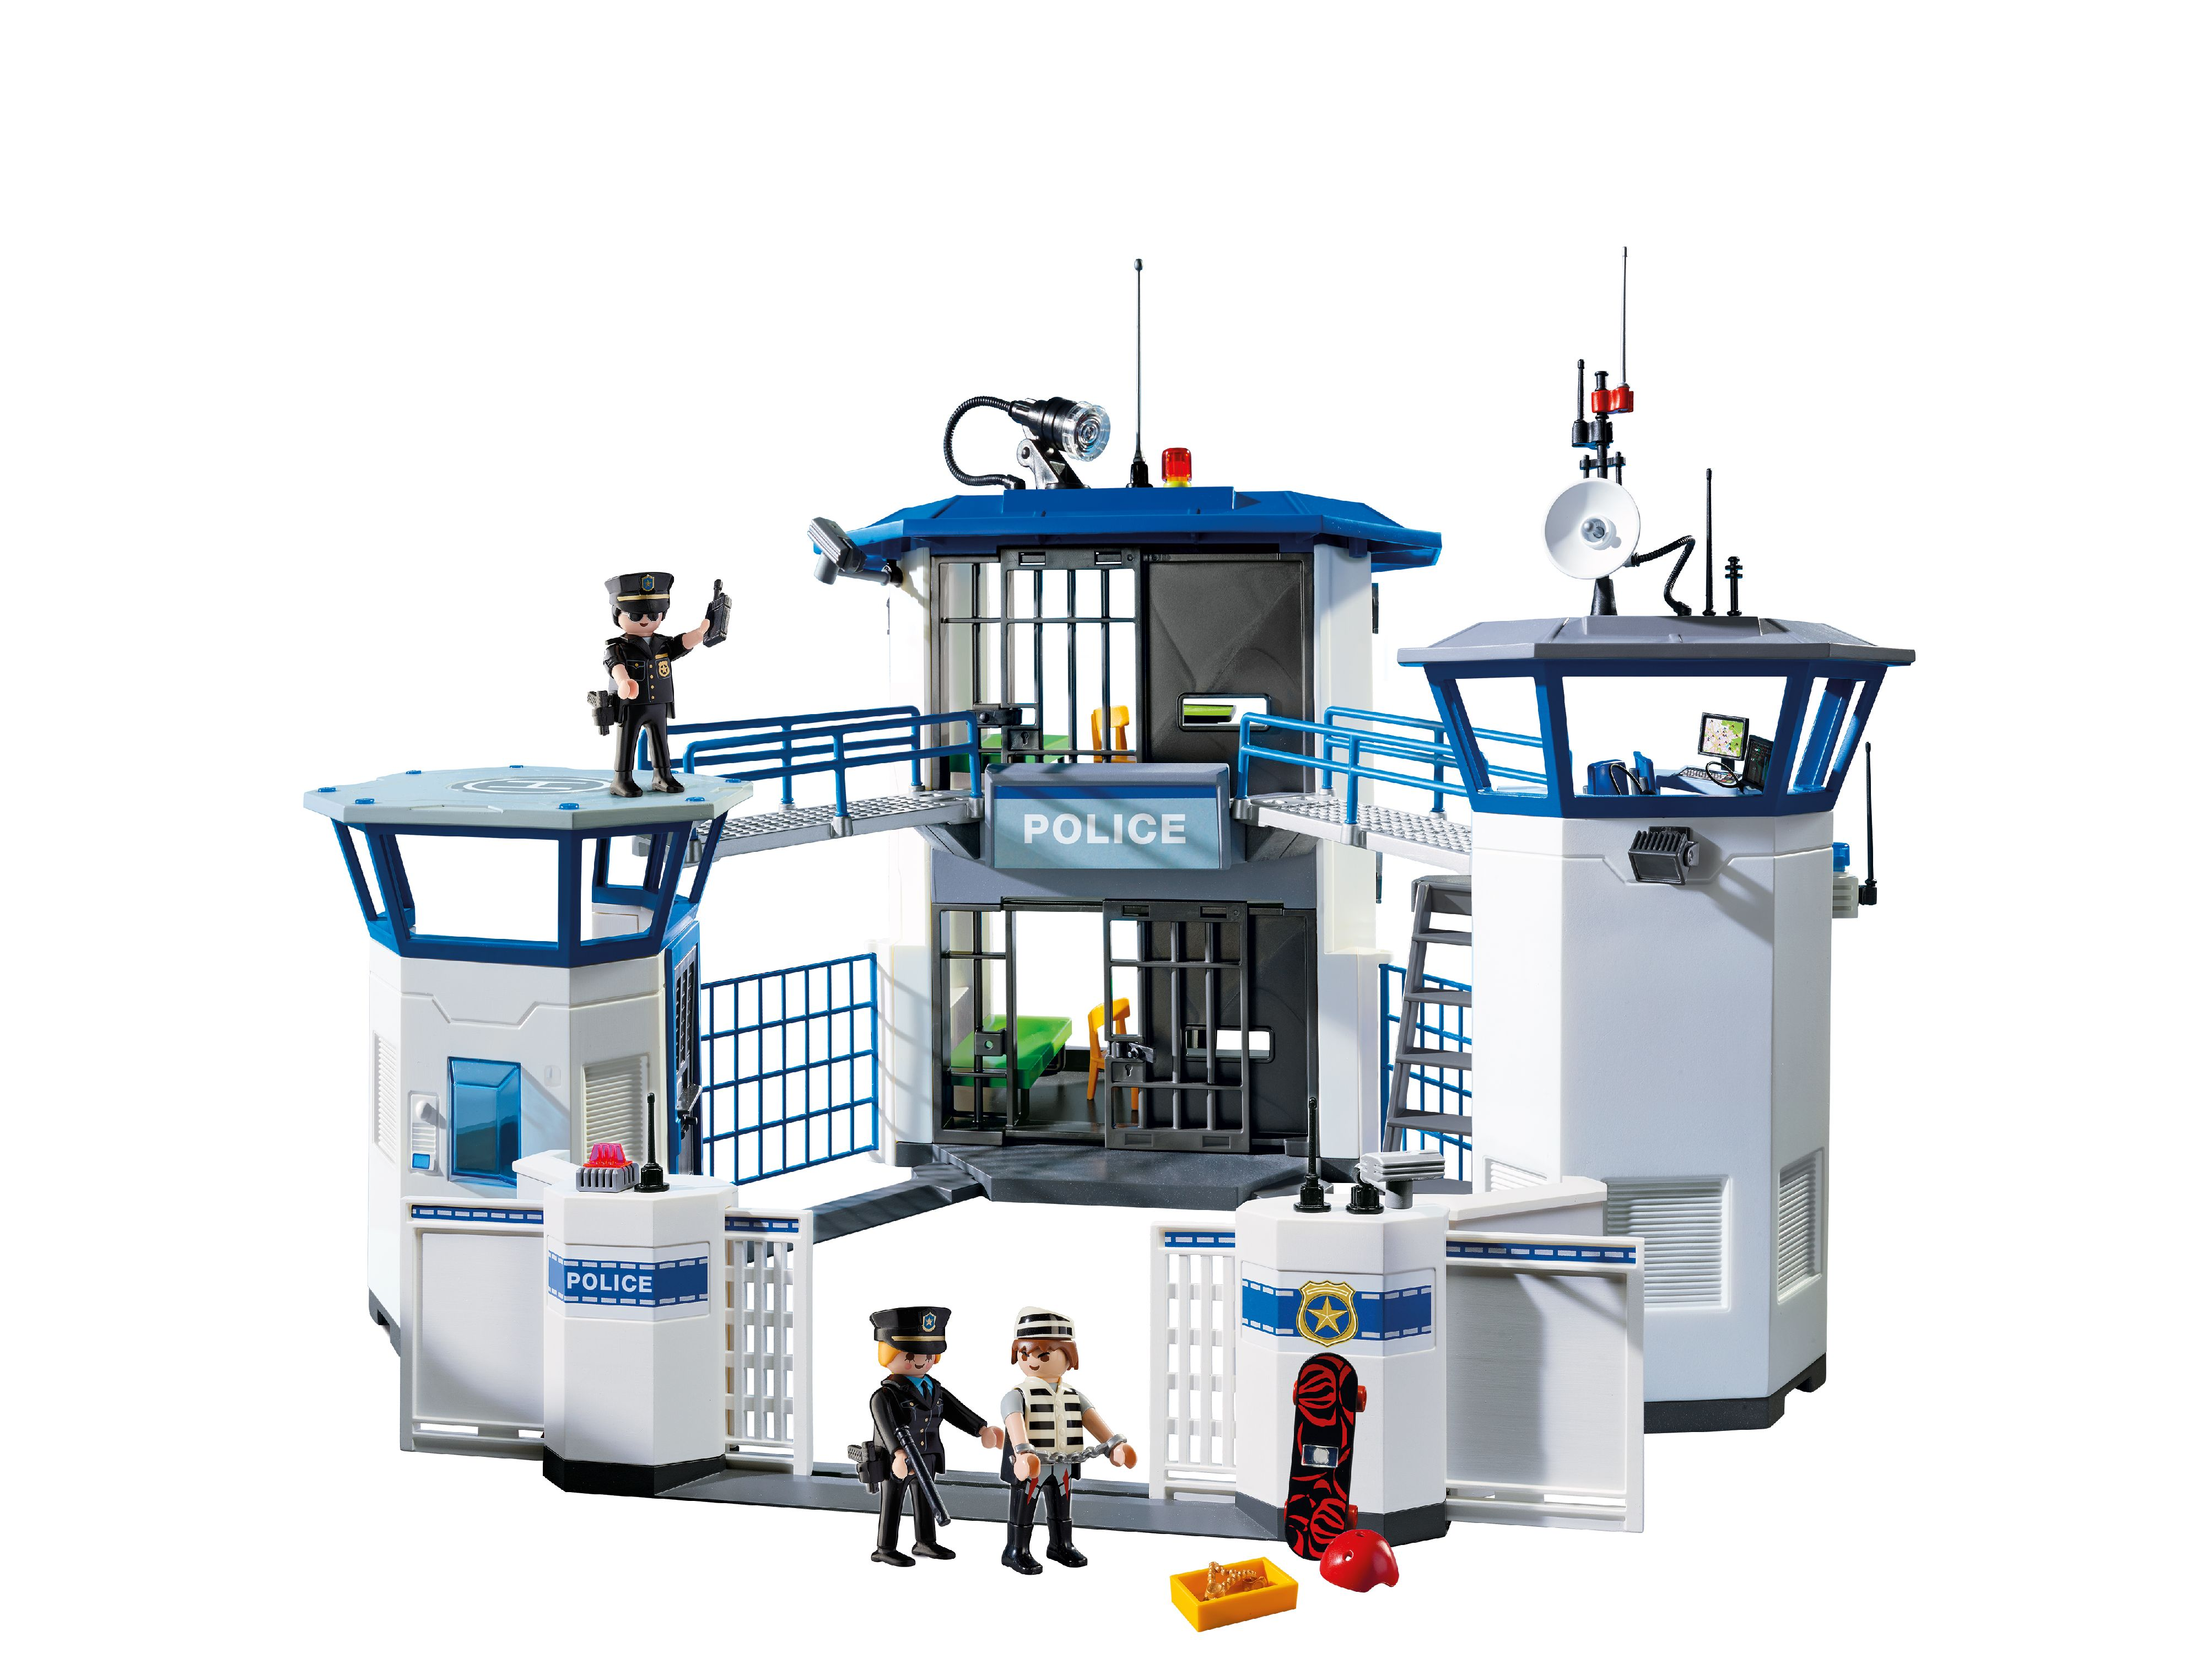 PLAYMOBIL Police Headquarters with Prison by PLAYMOBIL